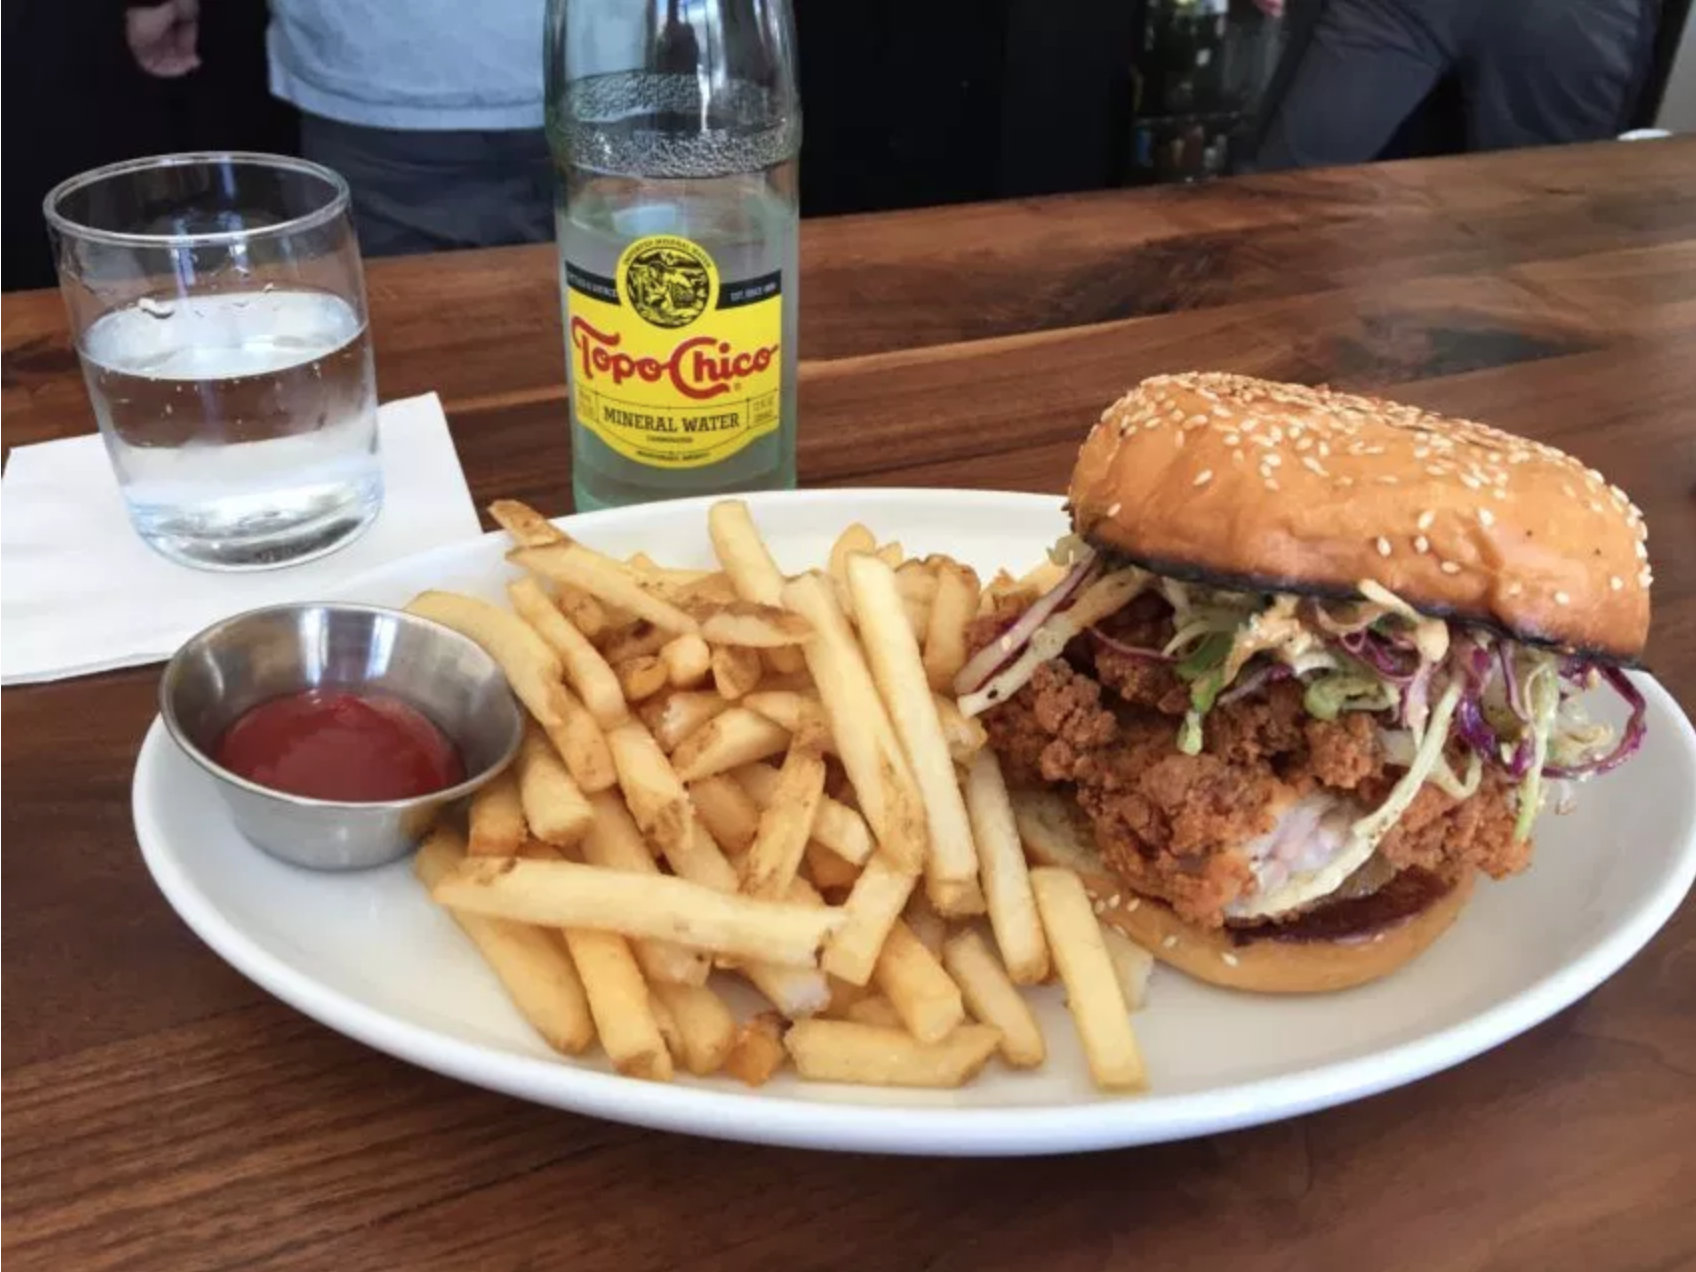 Where to eat in the Mission